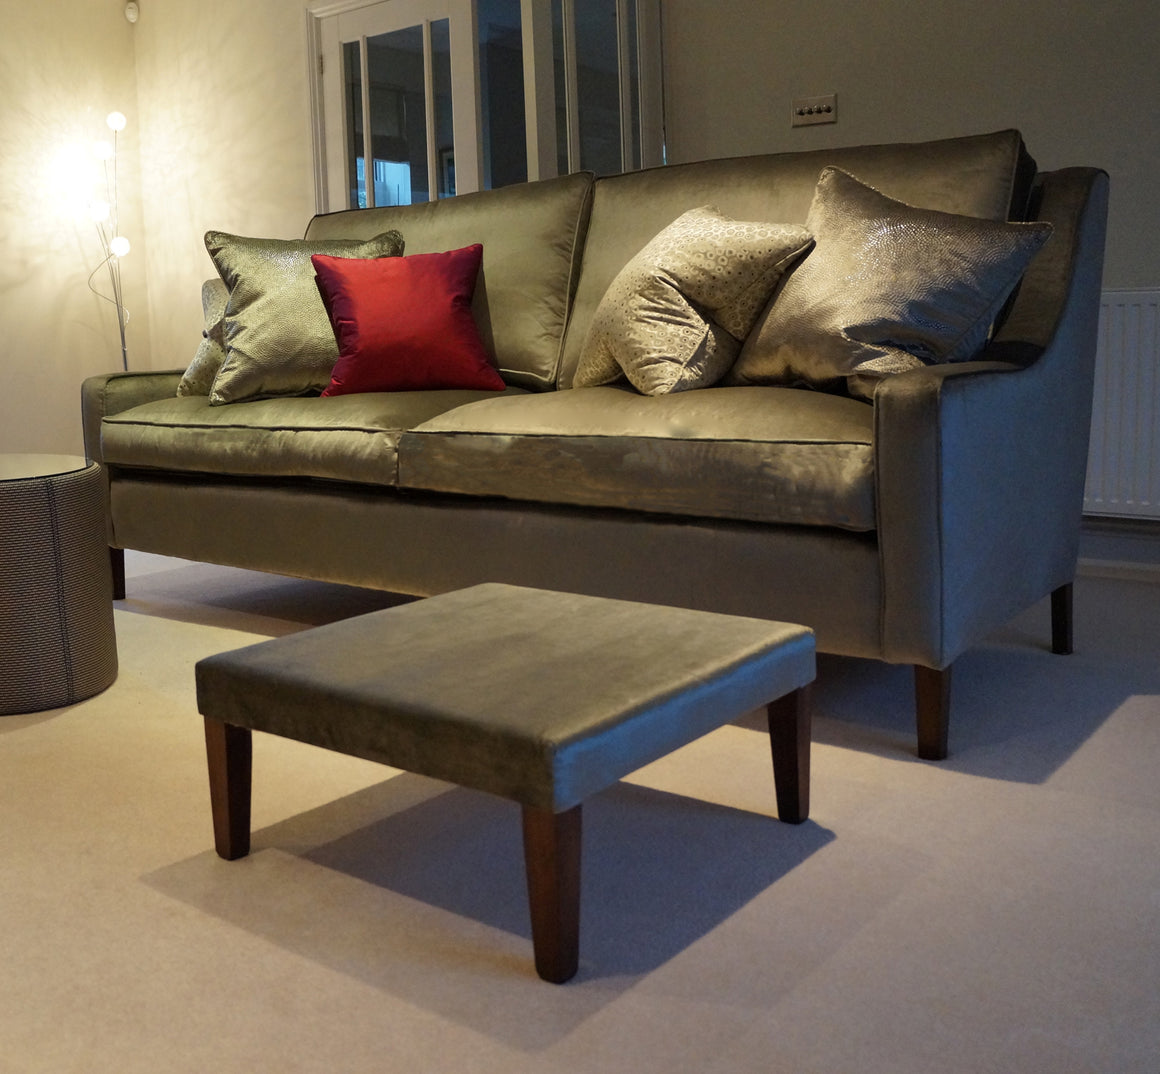 A Marlow Cushion Back Sofa and Chairs